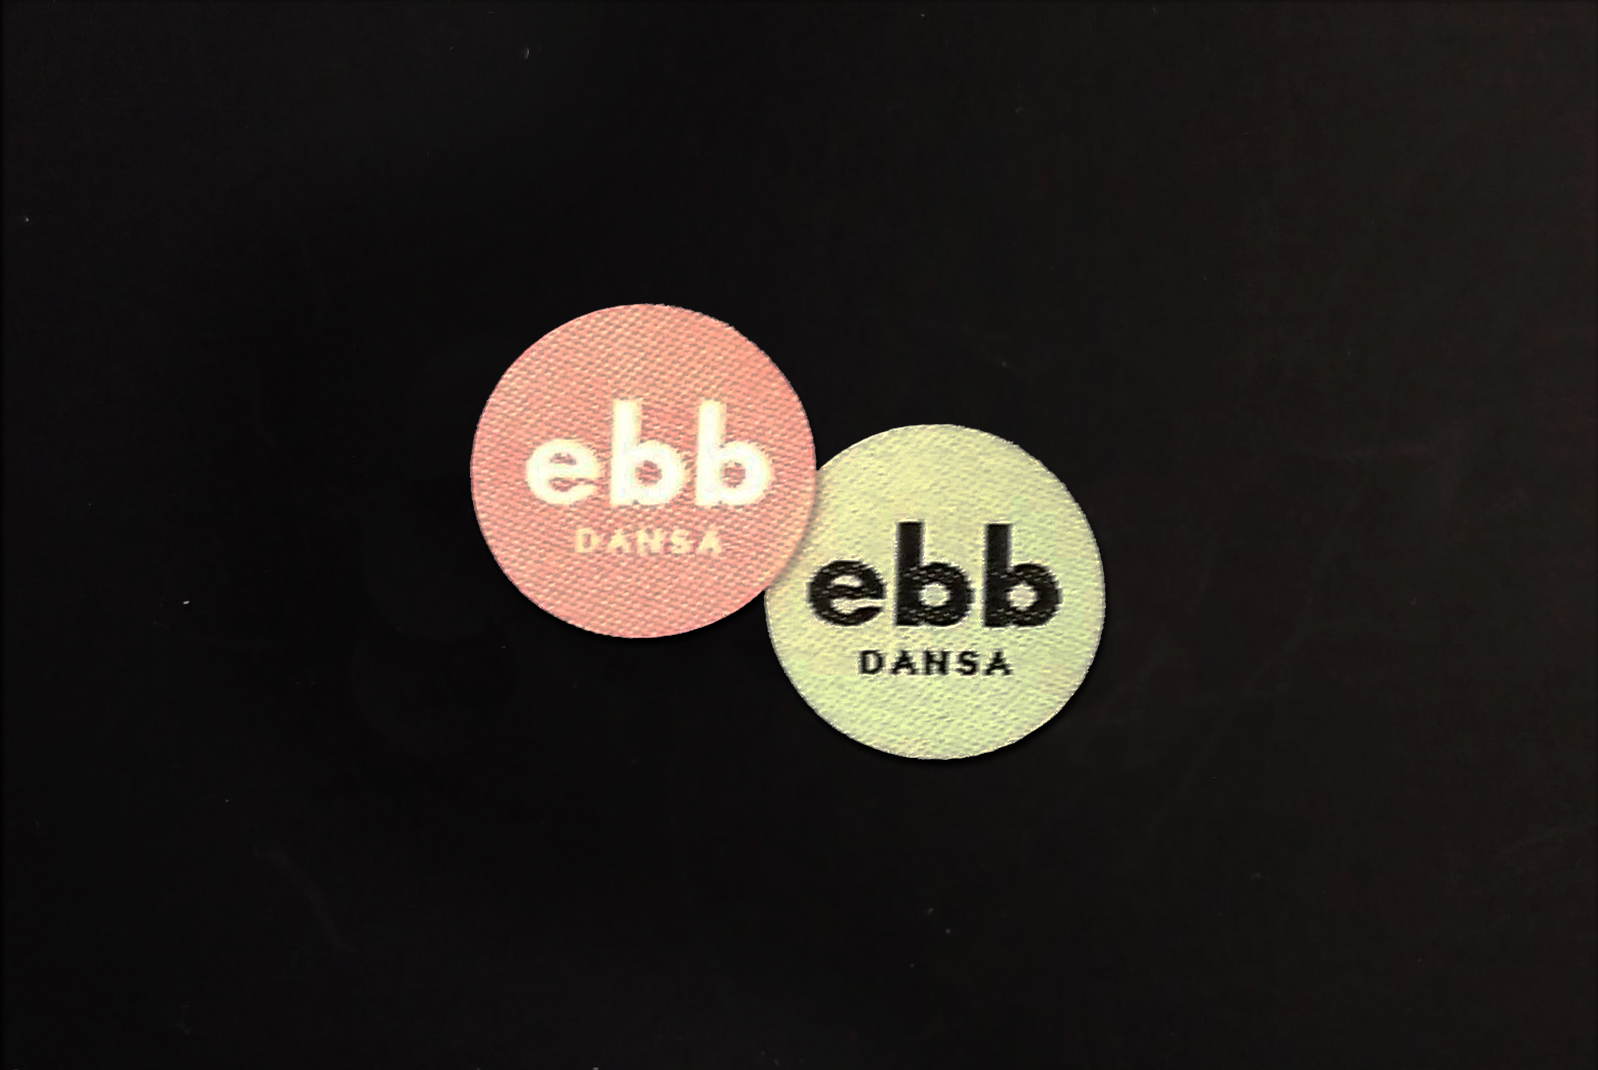 Ebb dance-labels